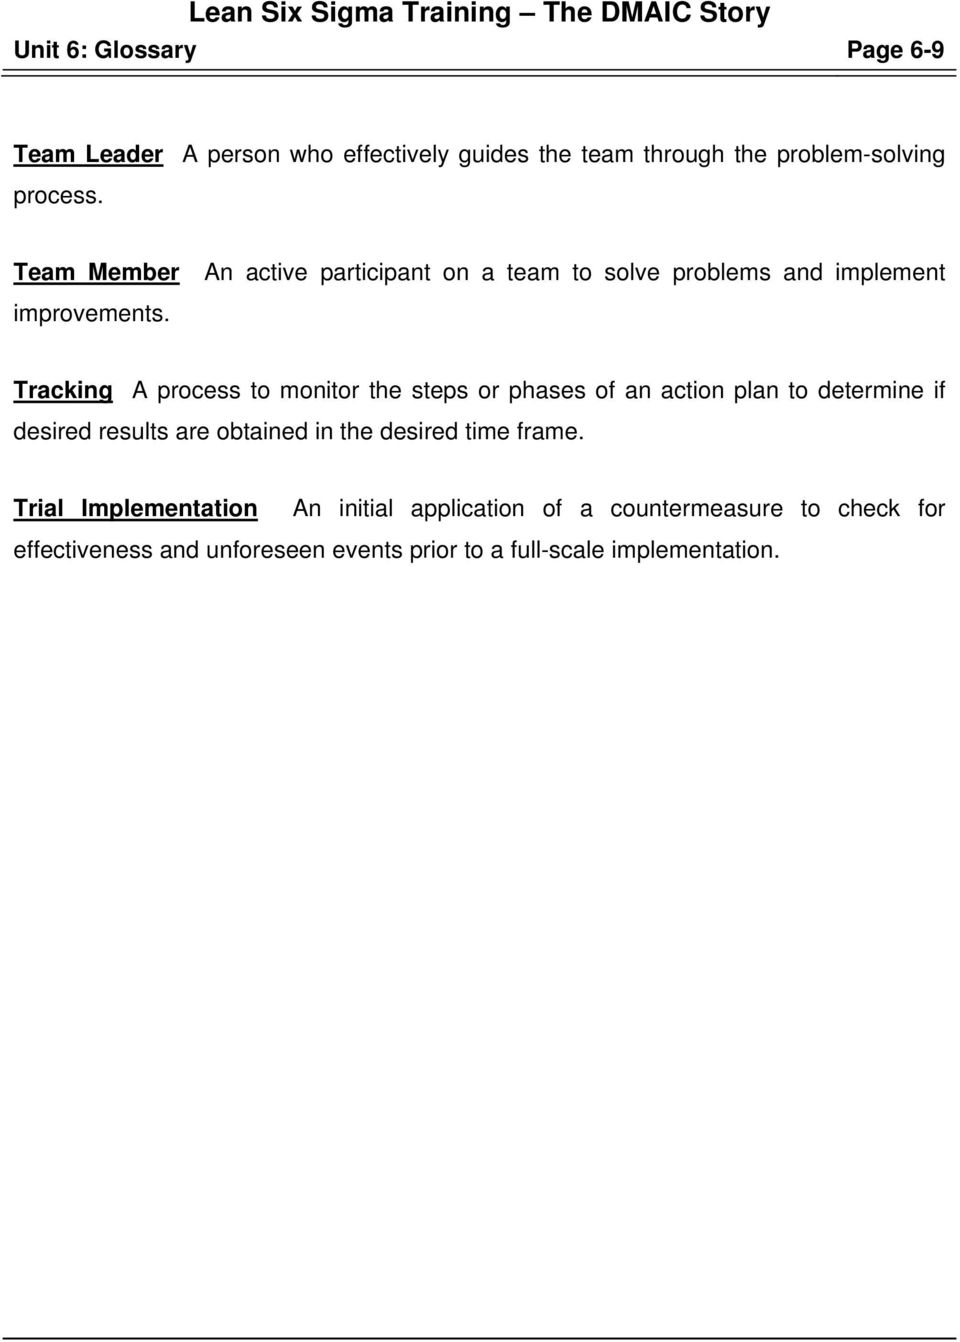 Tracking A process to monitor the steps or phases of an action plan to determine if desired results are obtained in the